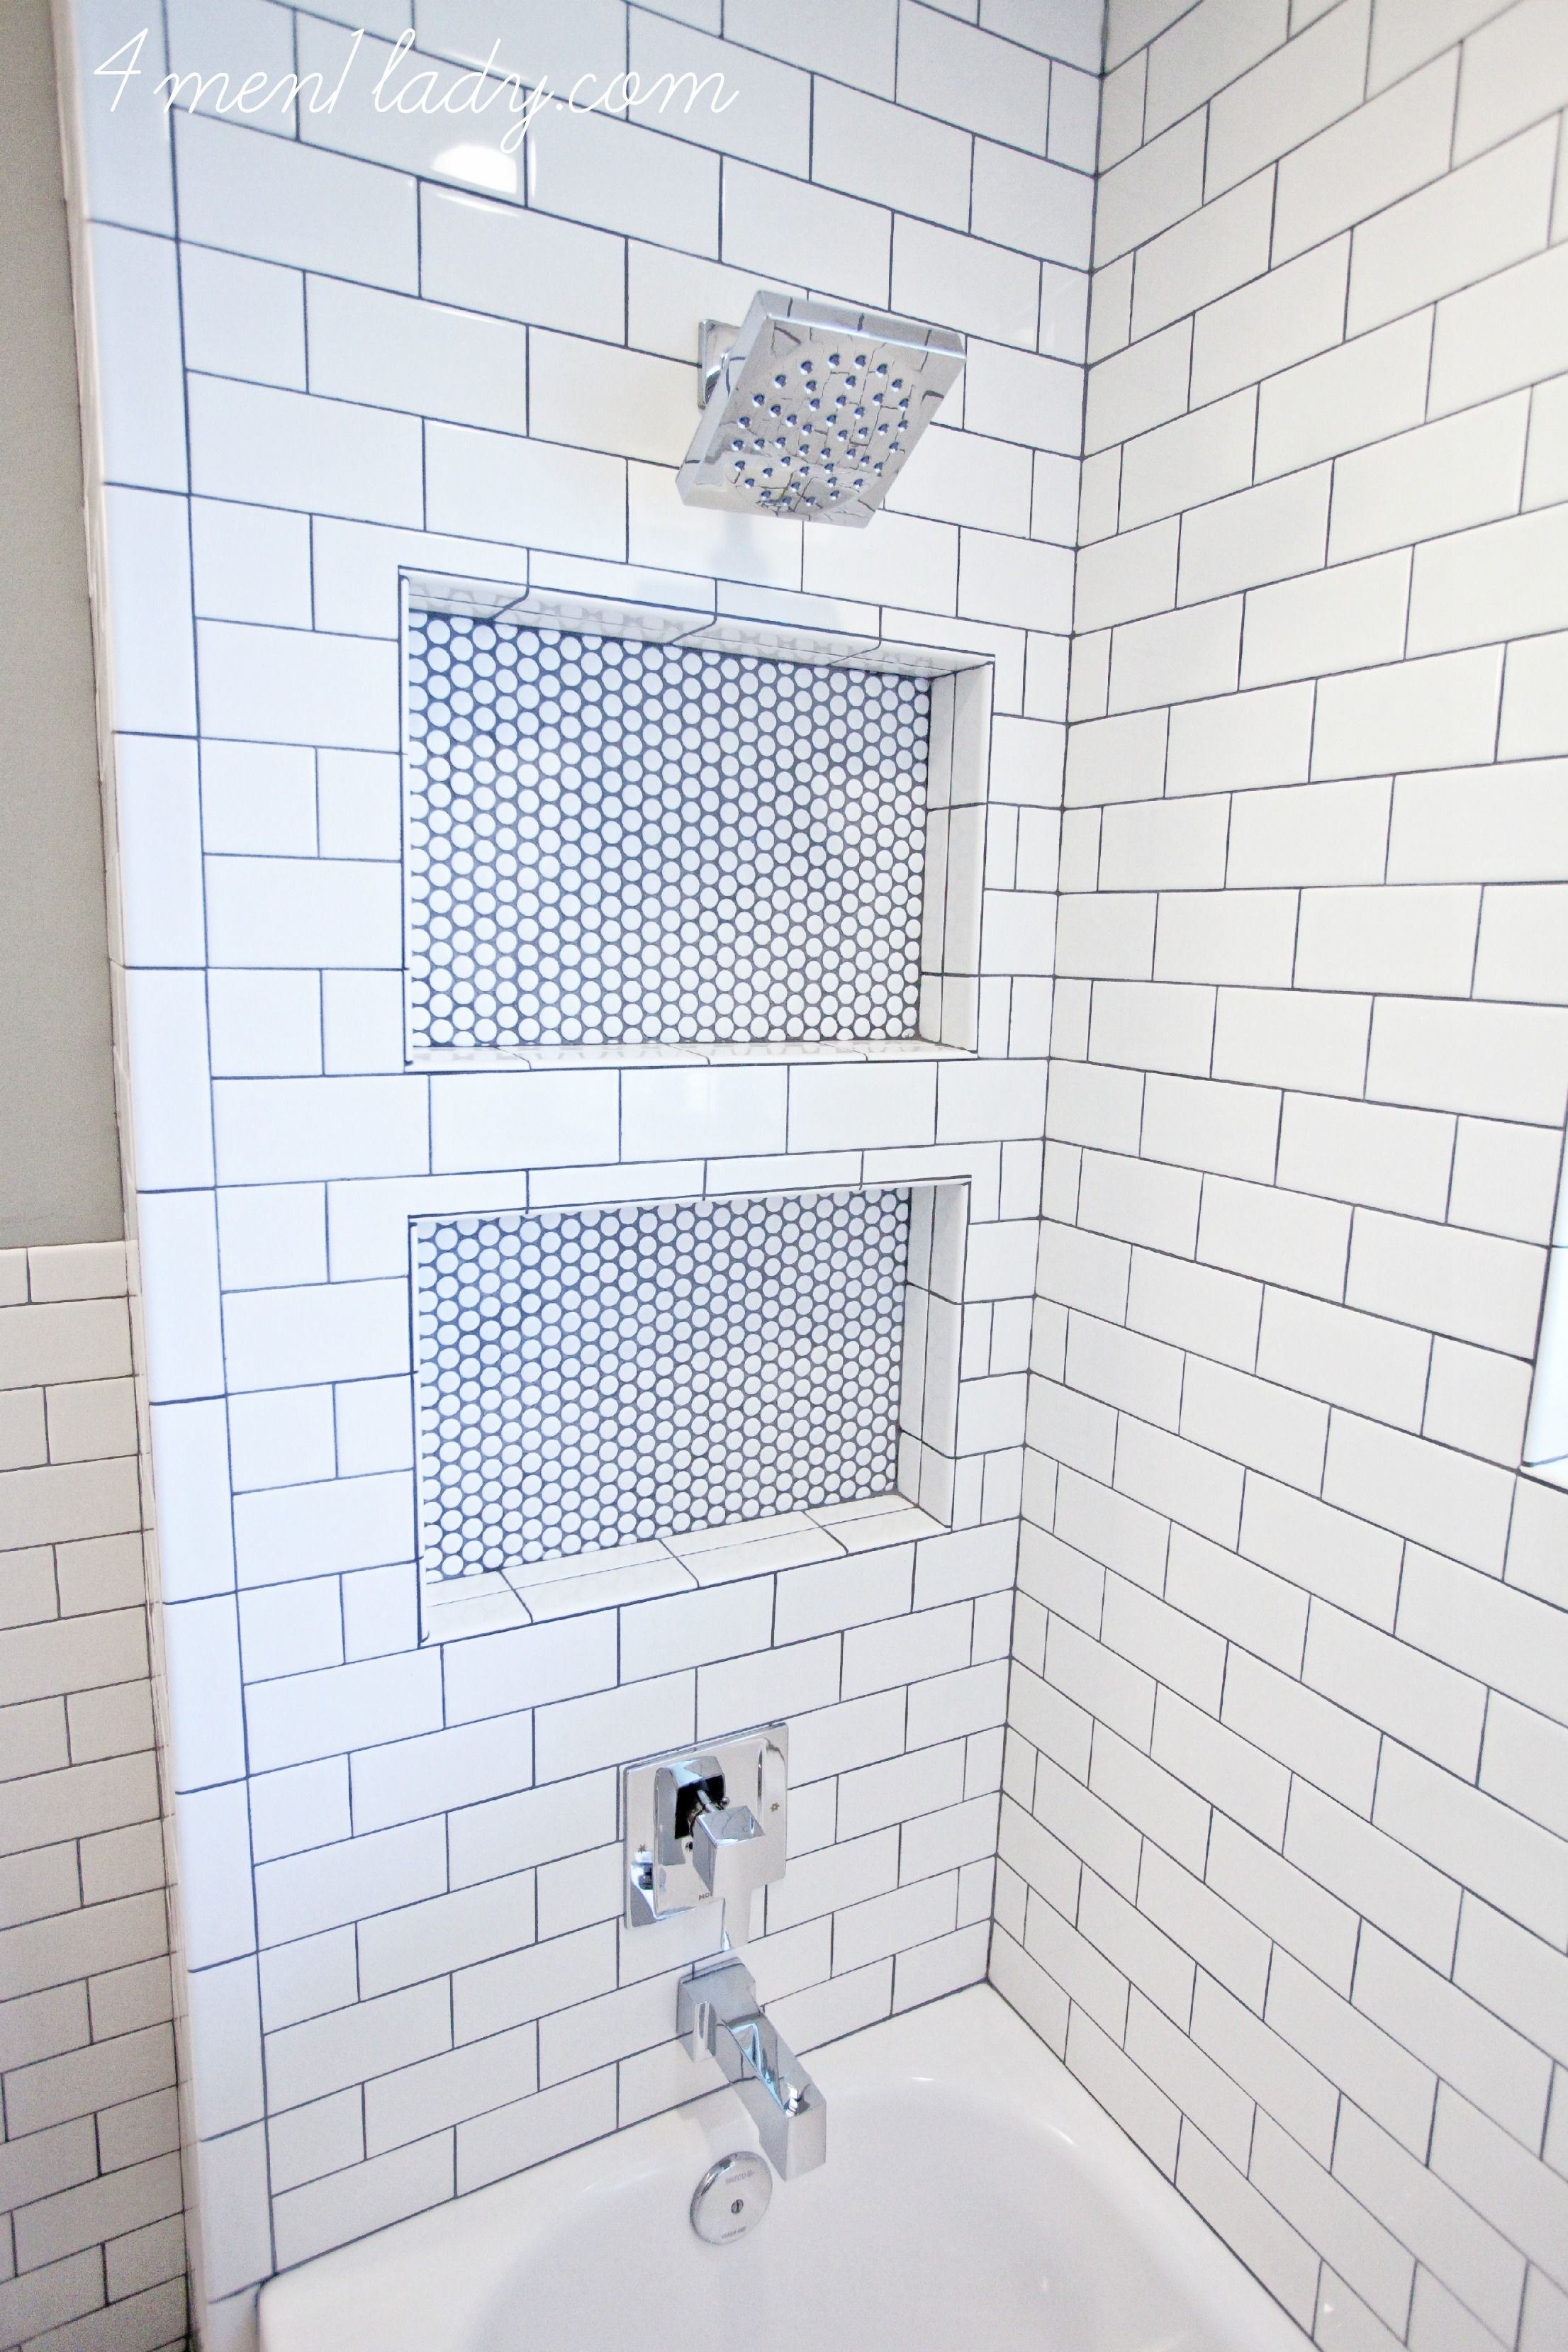 Shower cubies under shower head